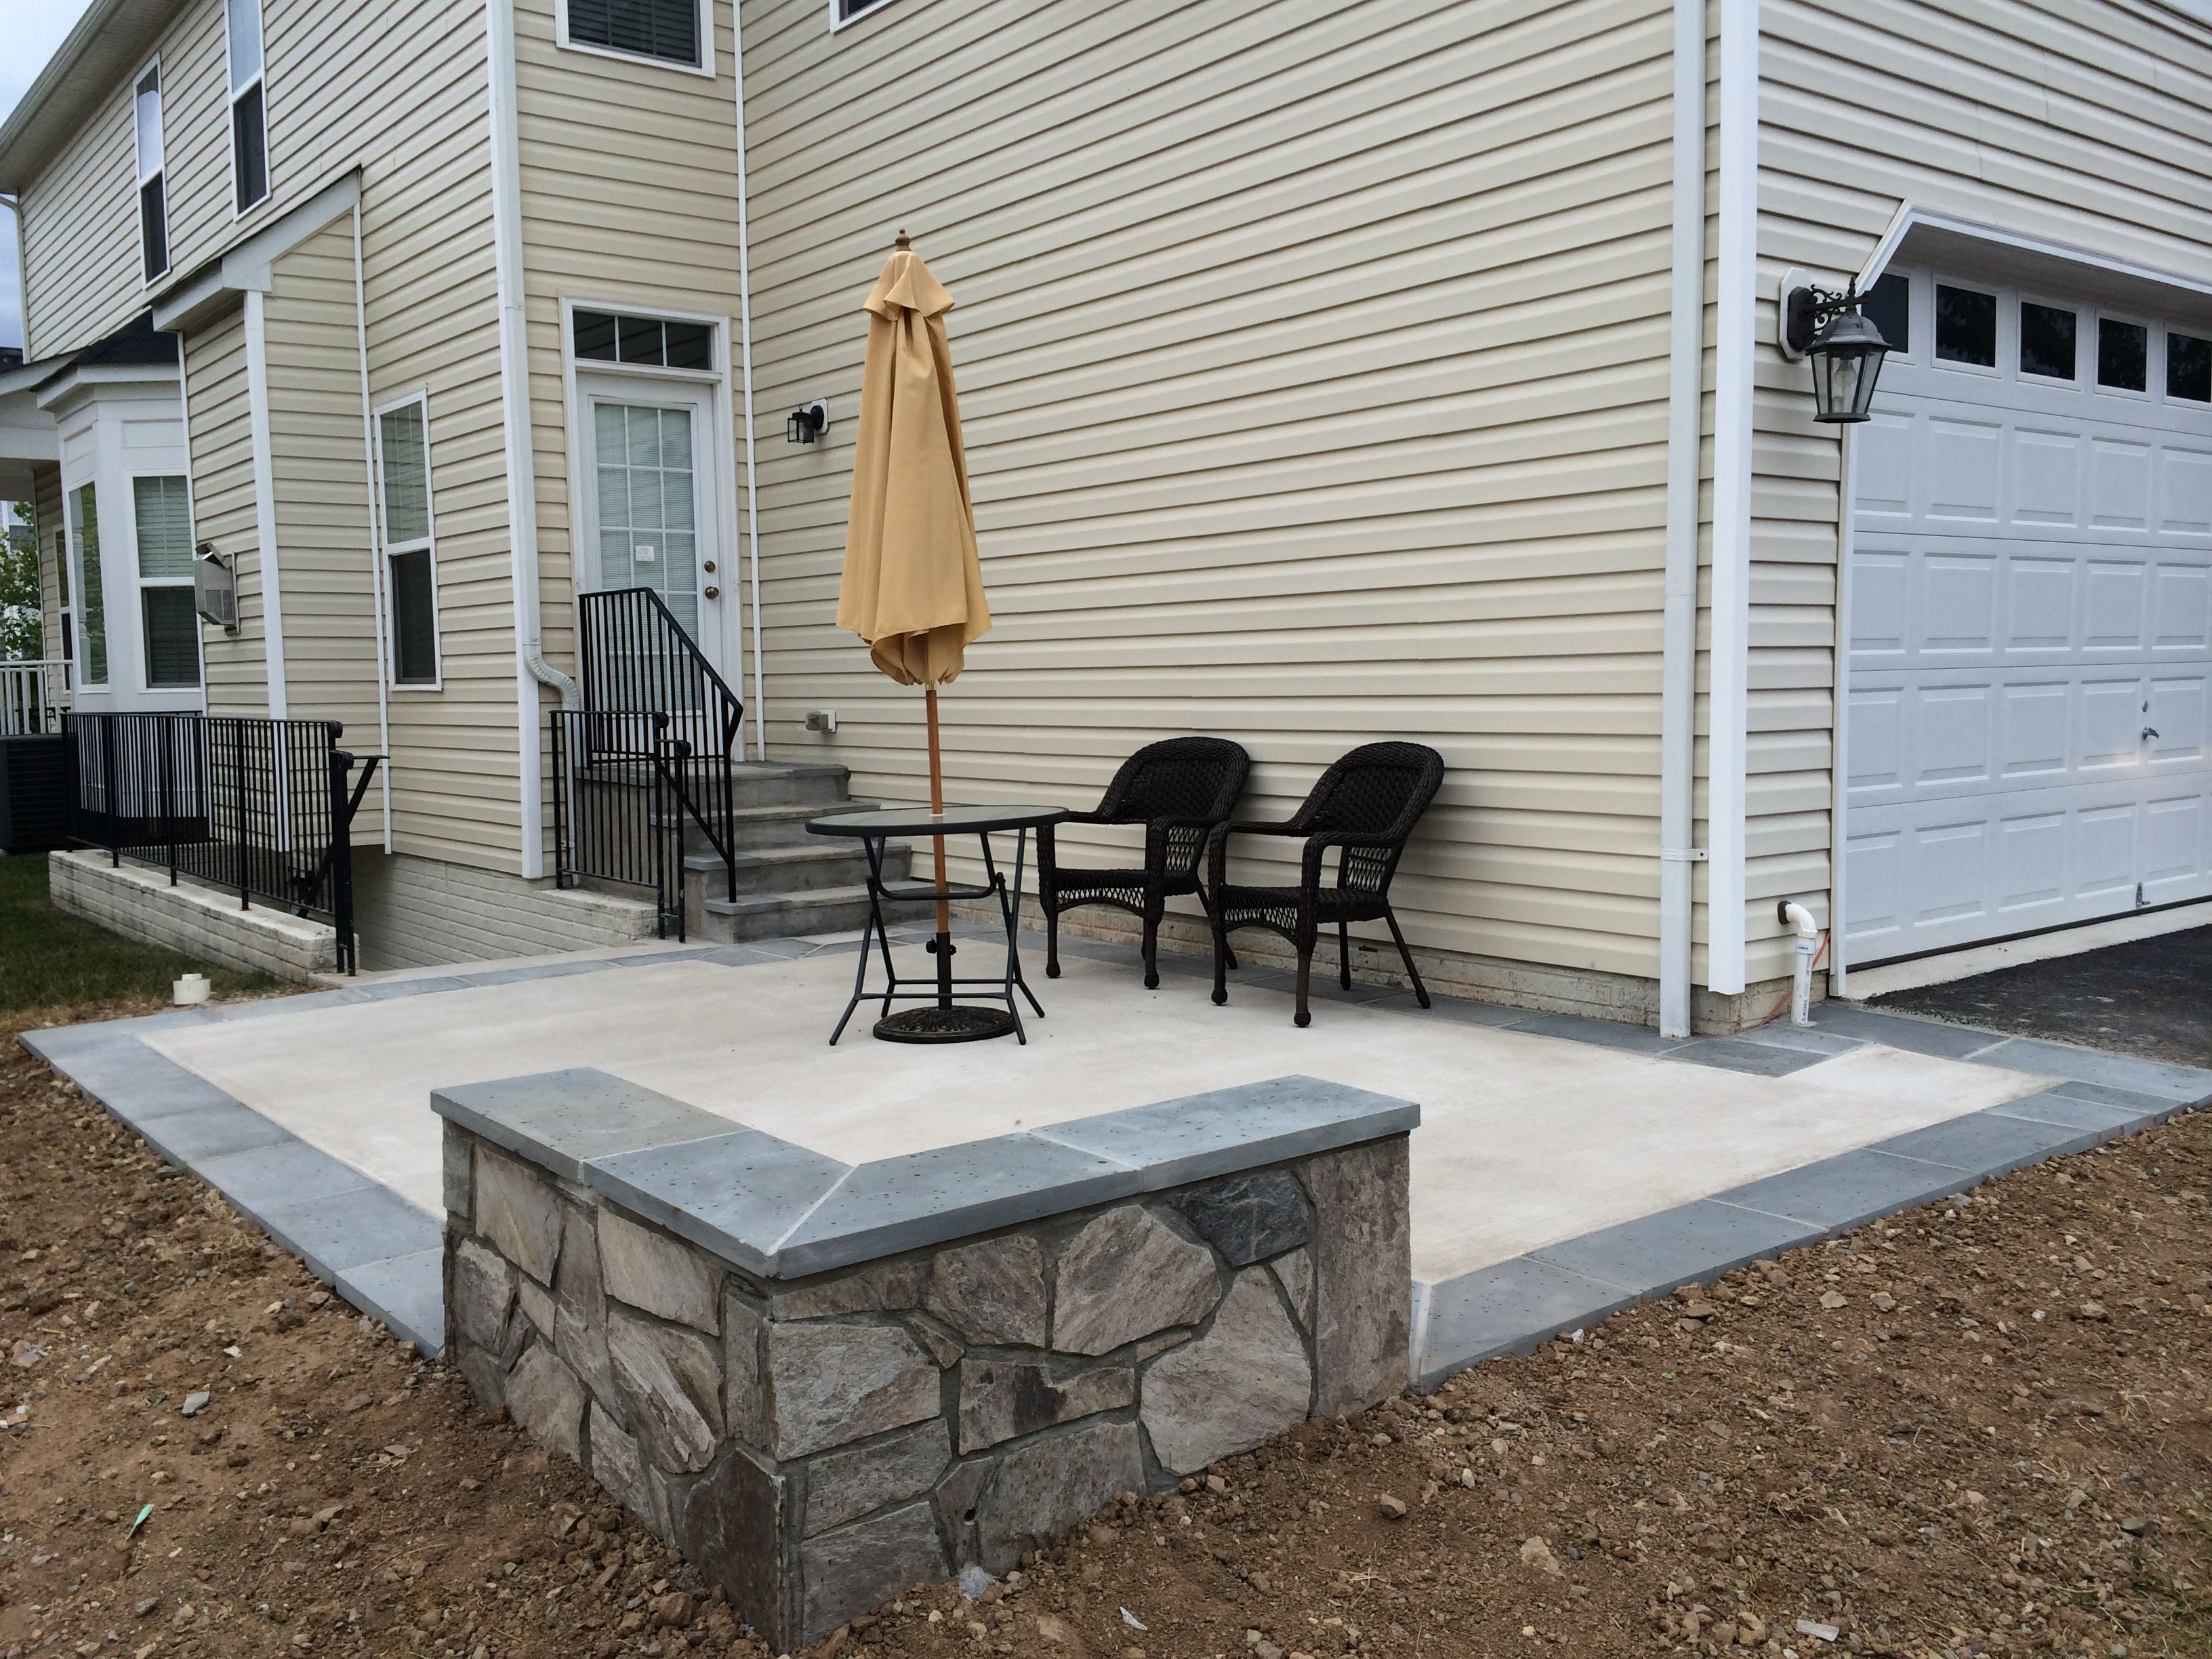 Concrete Patio With A Stone Seating Wall And Flagstone Border In Aldie Virginia Concrete Patio Backyard Landscaping Designs Backyard Landscaping